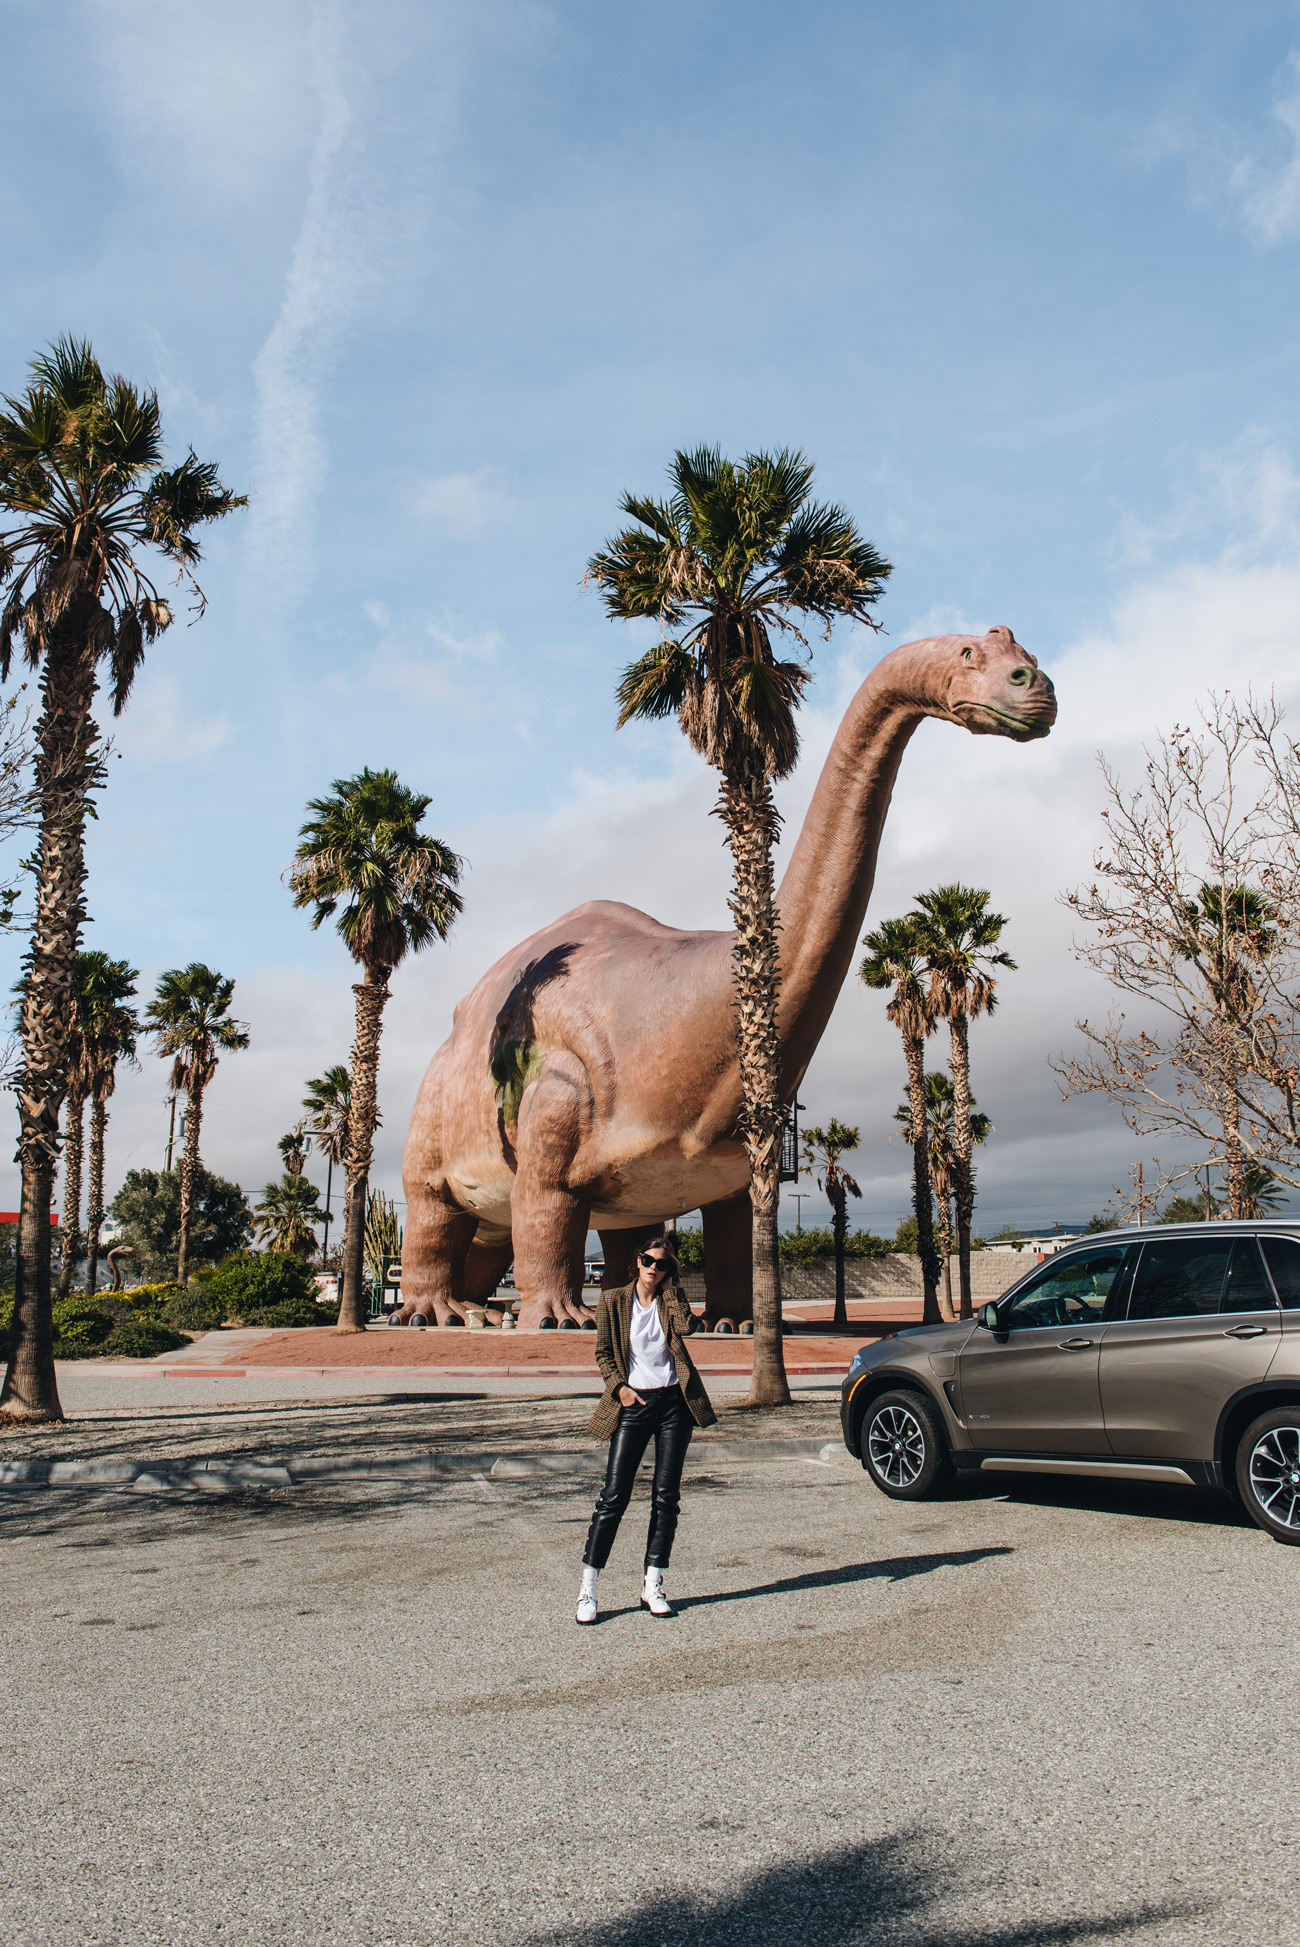 Kalifornien-Road-Trip-Usa-Palm-Springs-Las-Vegas-Joshua-Tree-Park-Grand-Canyon-Monument-Valley-Los-Angeles-nina-schwichtenberg-fashiioncarpet